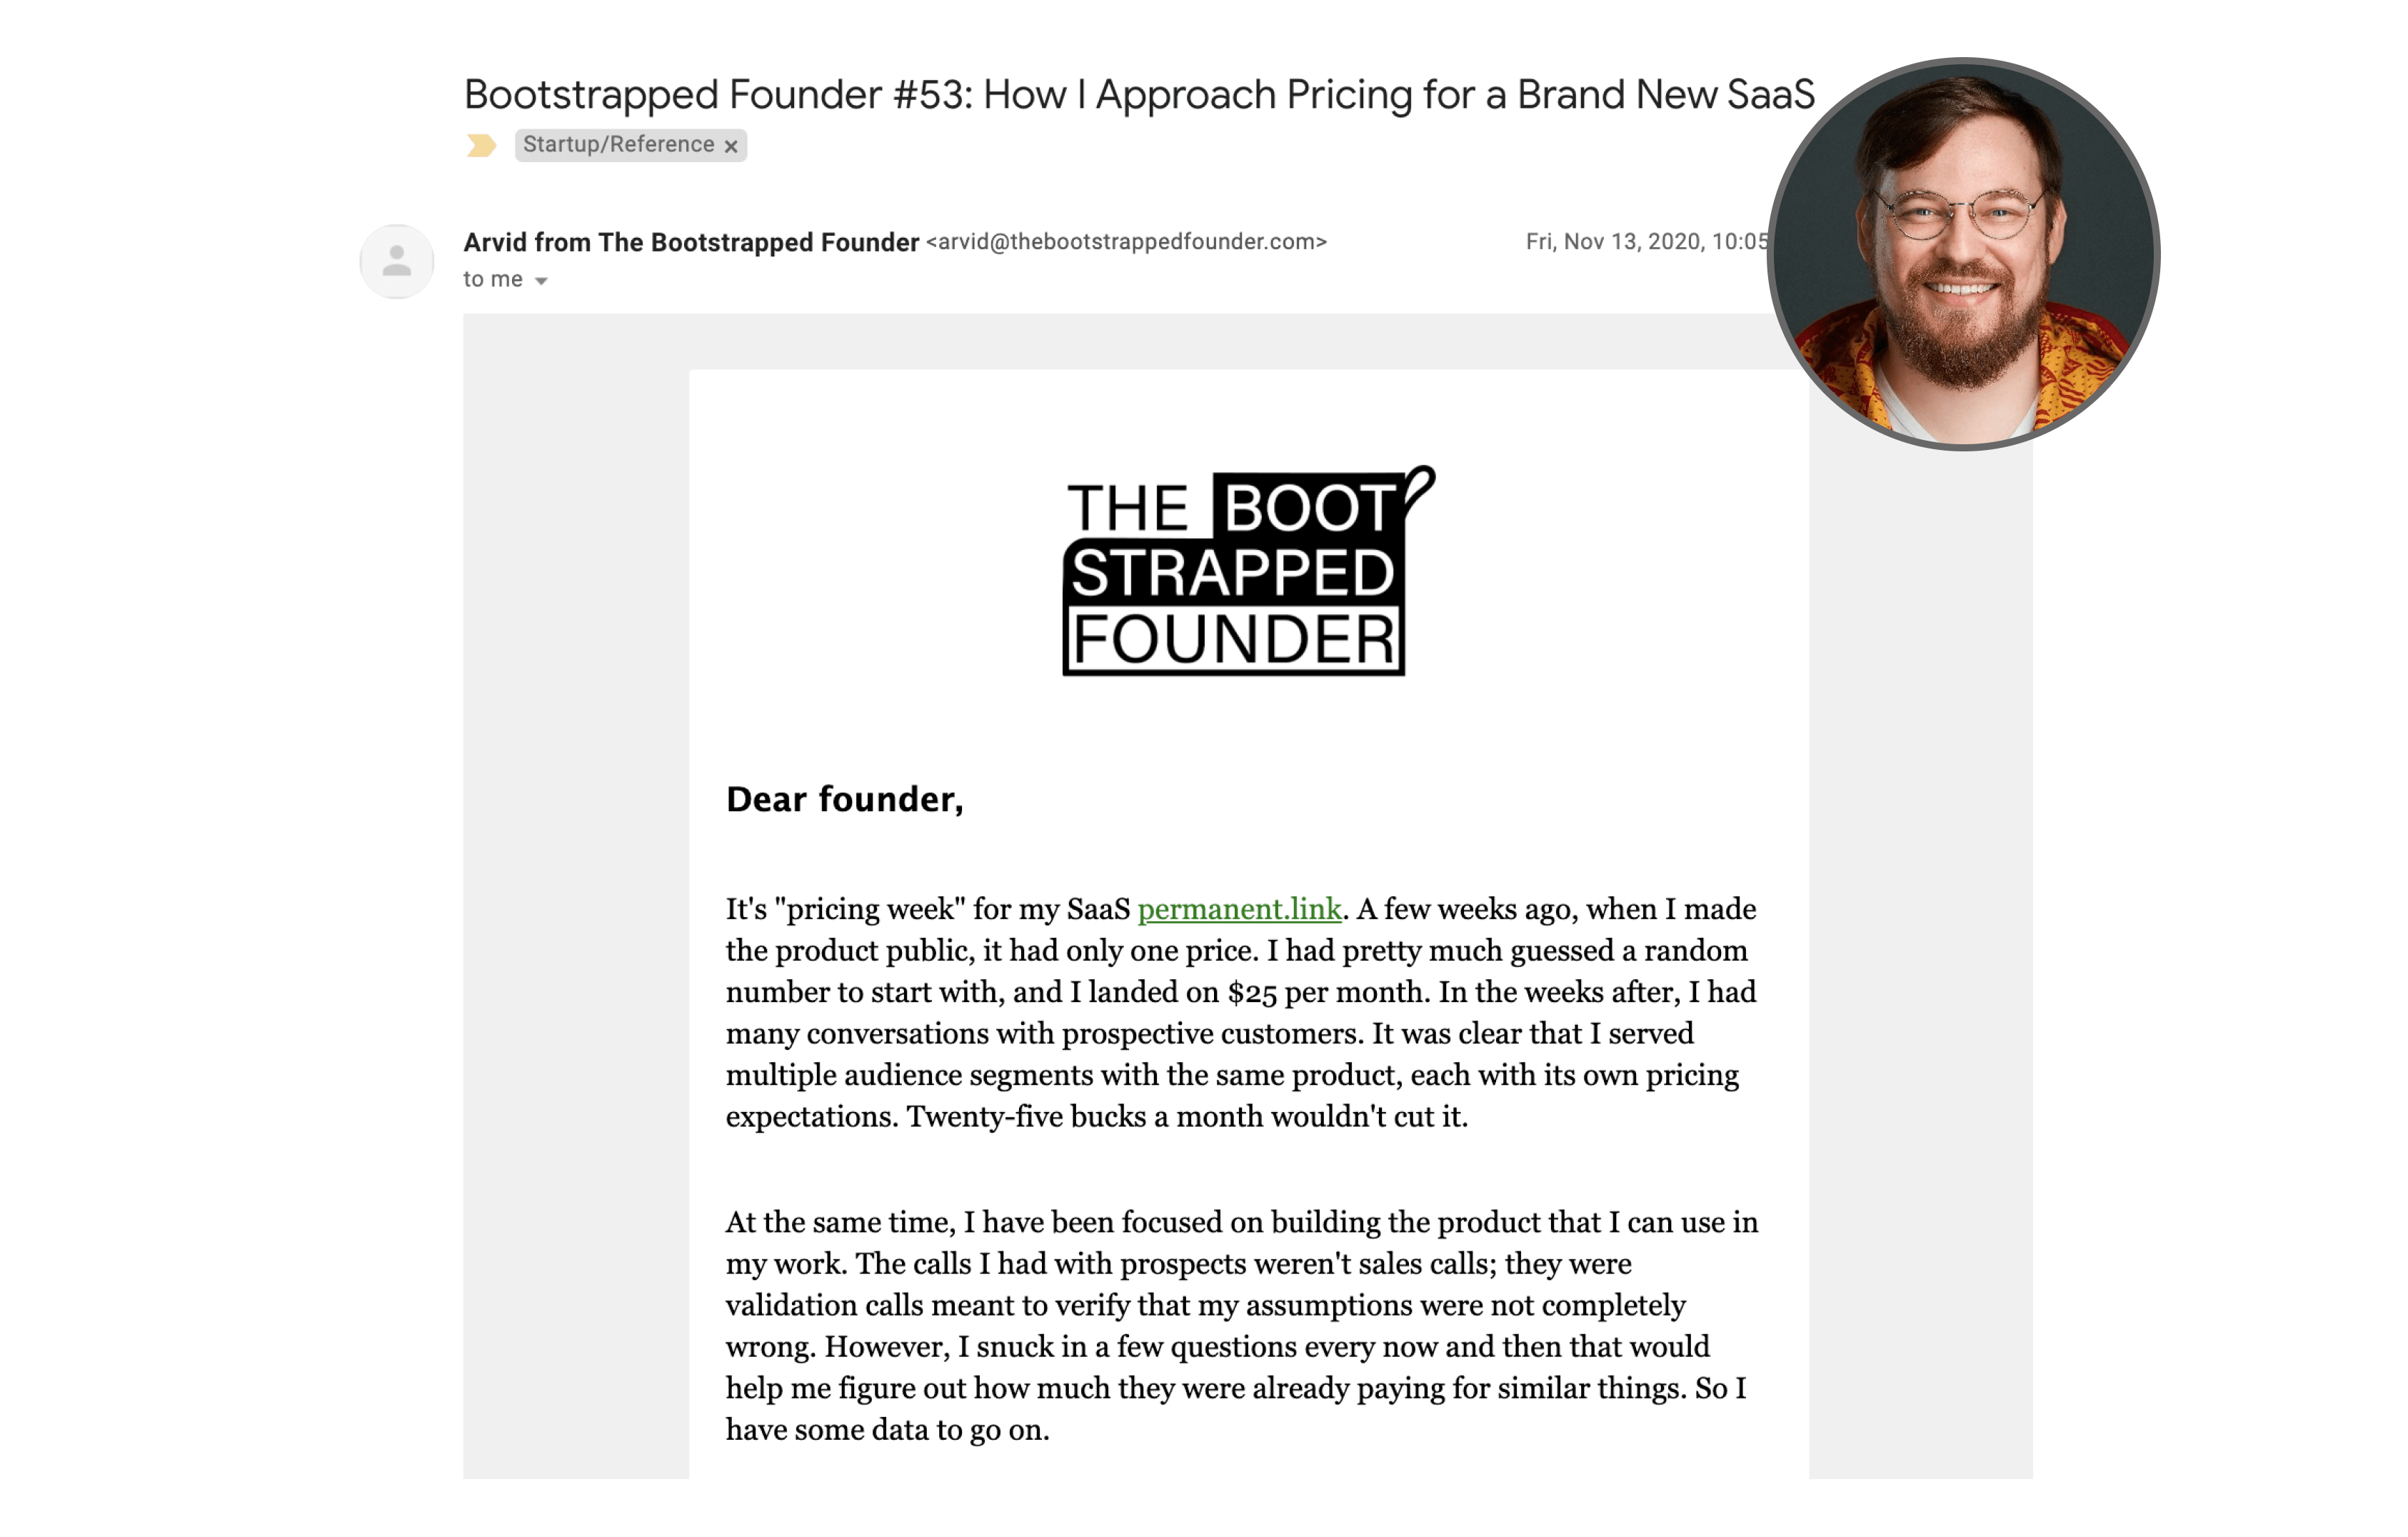 Arvid has a thorough thought process documented in his Bootstrapped Founder newsletter.